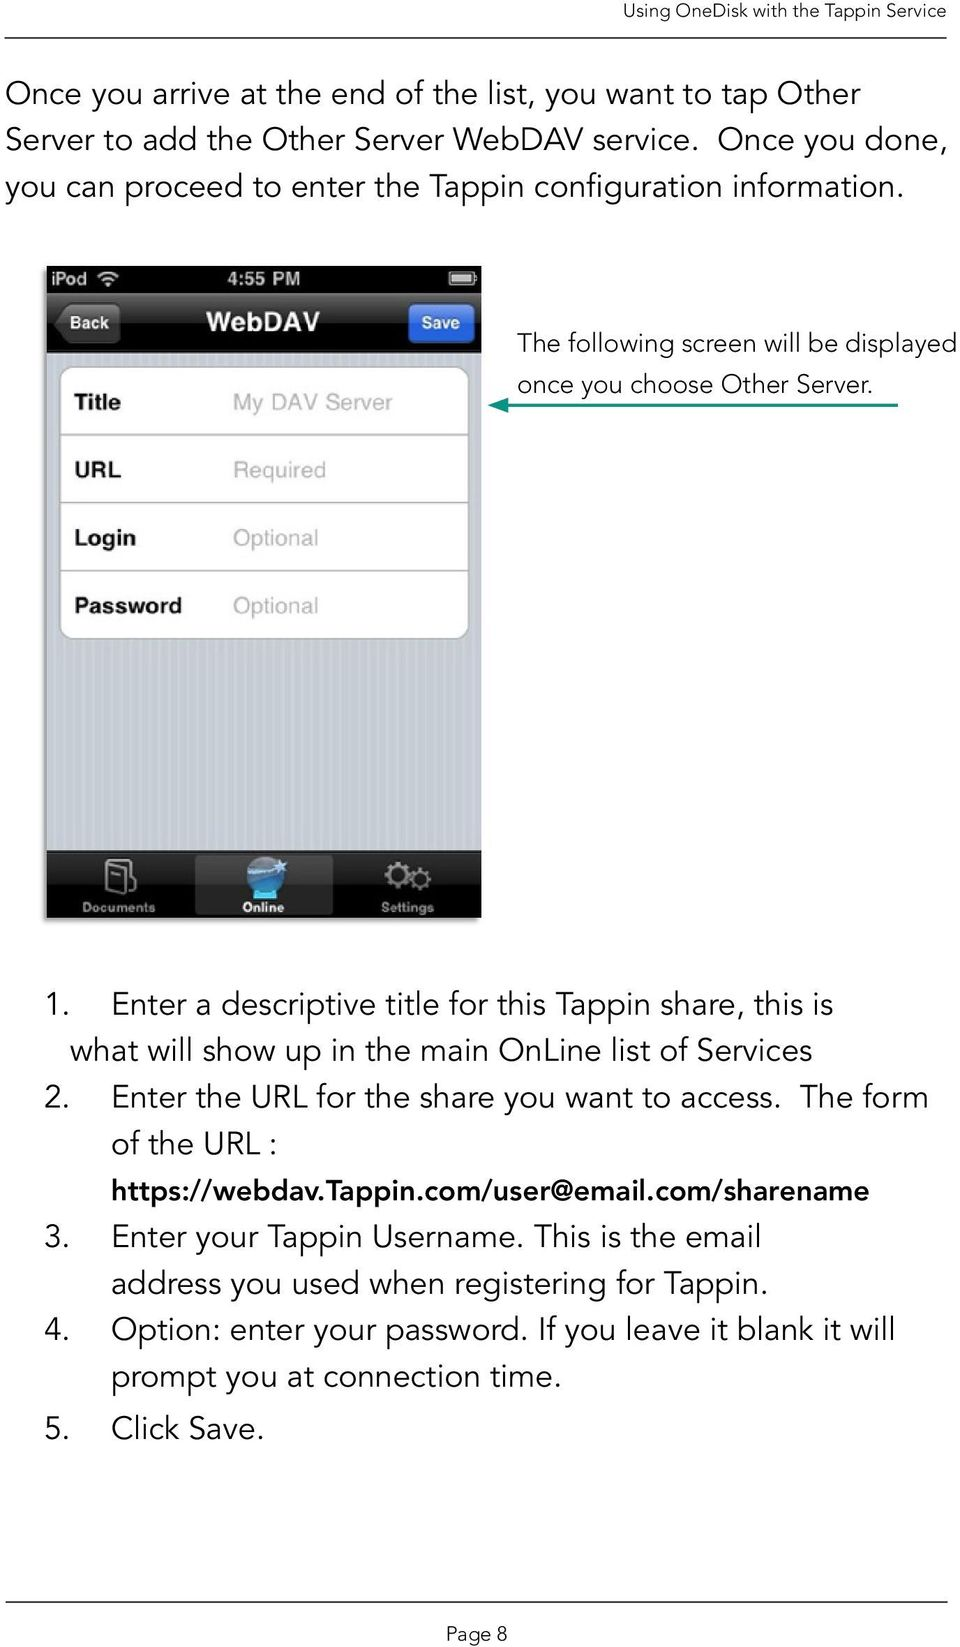 Enter a descriptive title for this Tappin share, this is what will show up in the main OnLine list of Services 2. Enter the URL for the share you want to access.